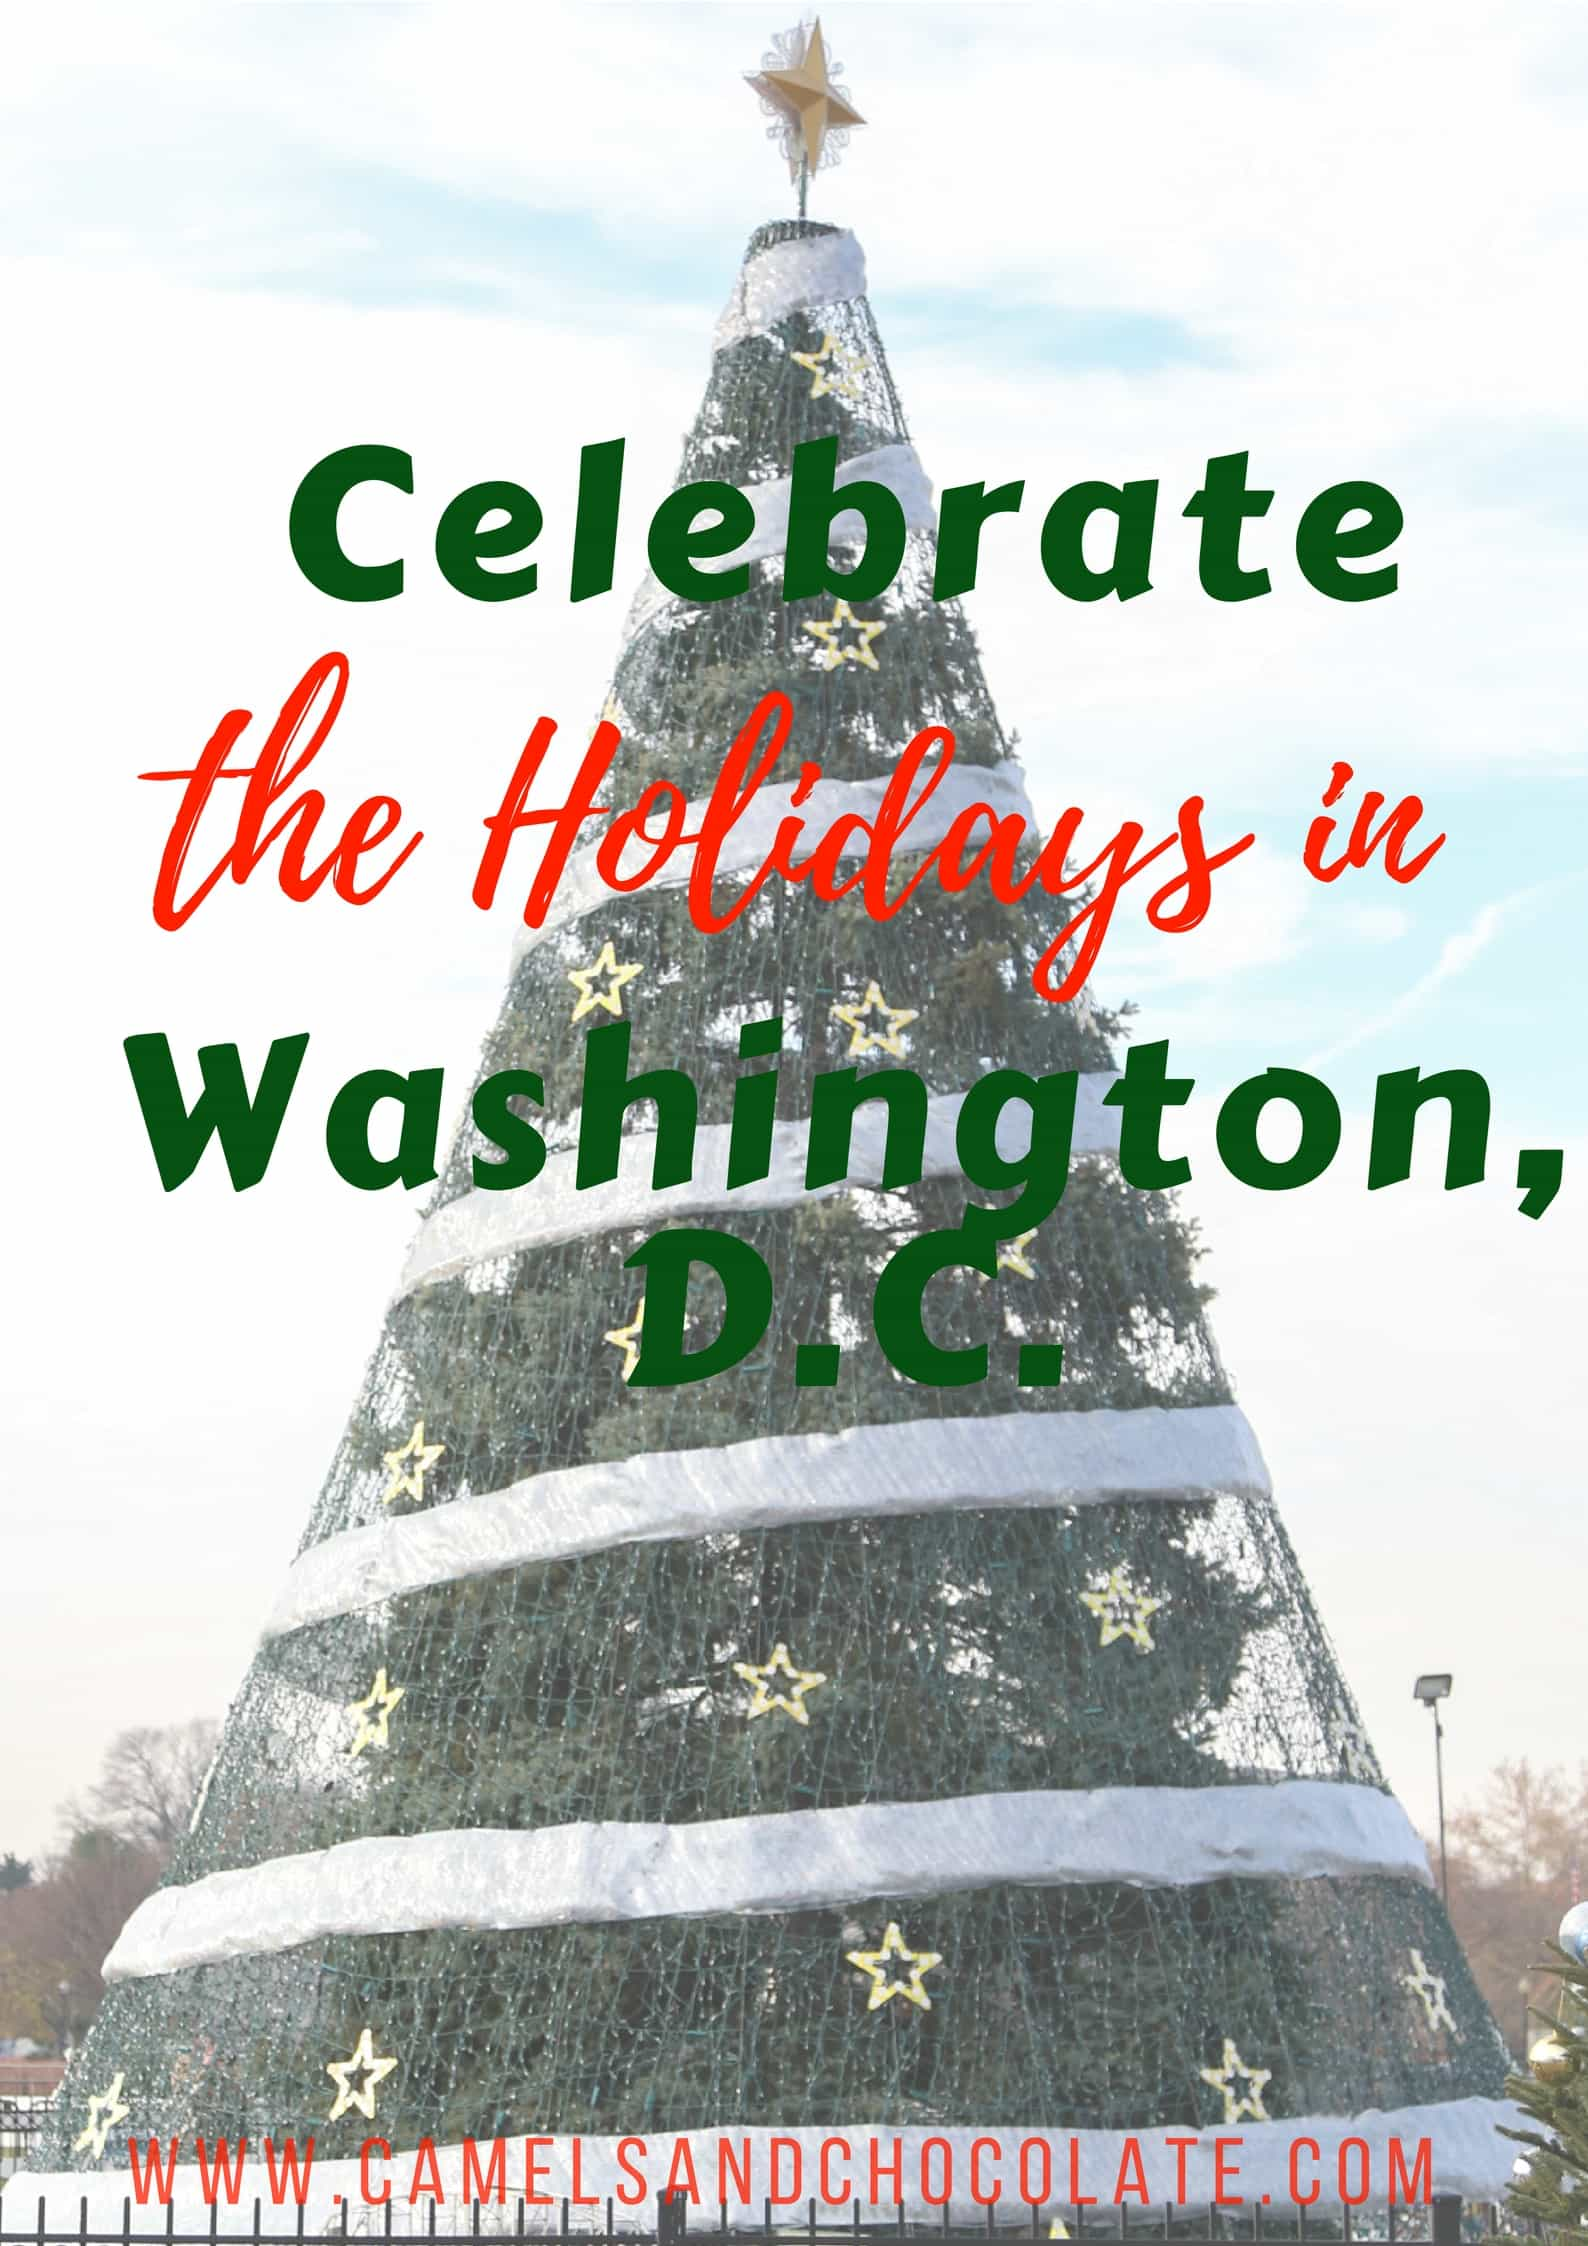 Doing the Holidays in Washington, D.C.